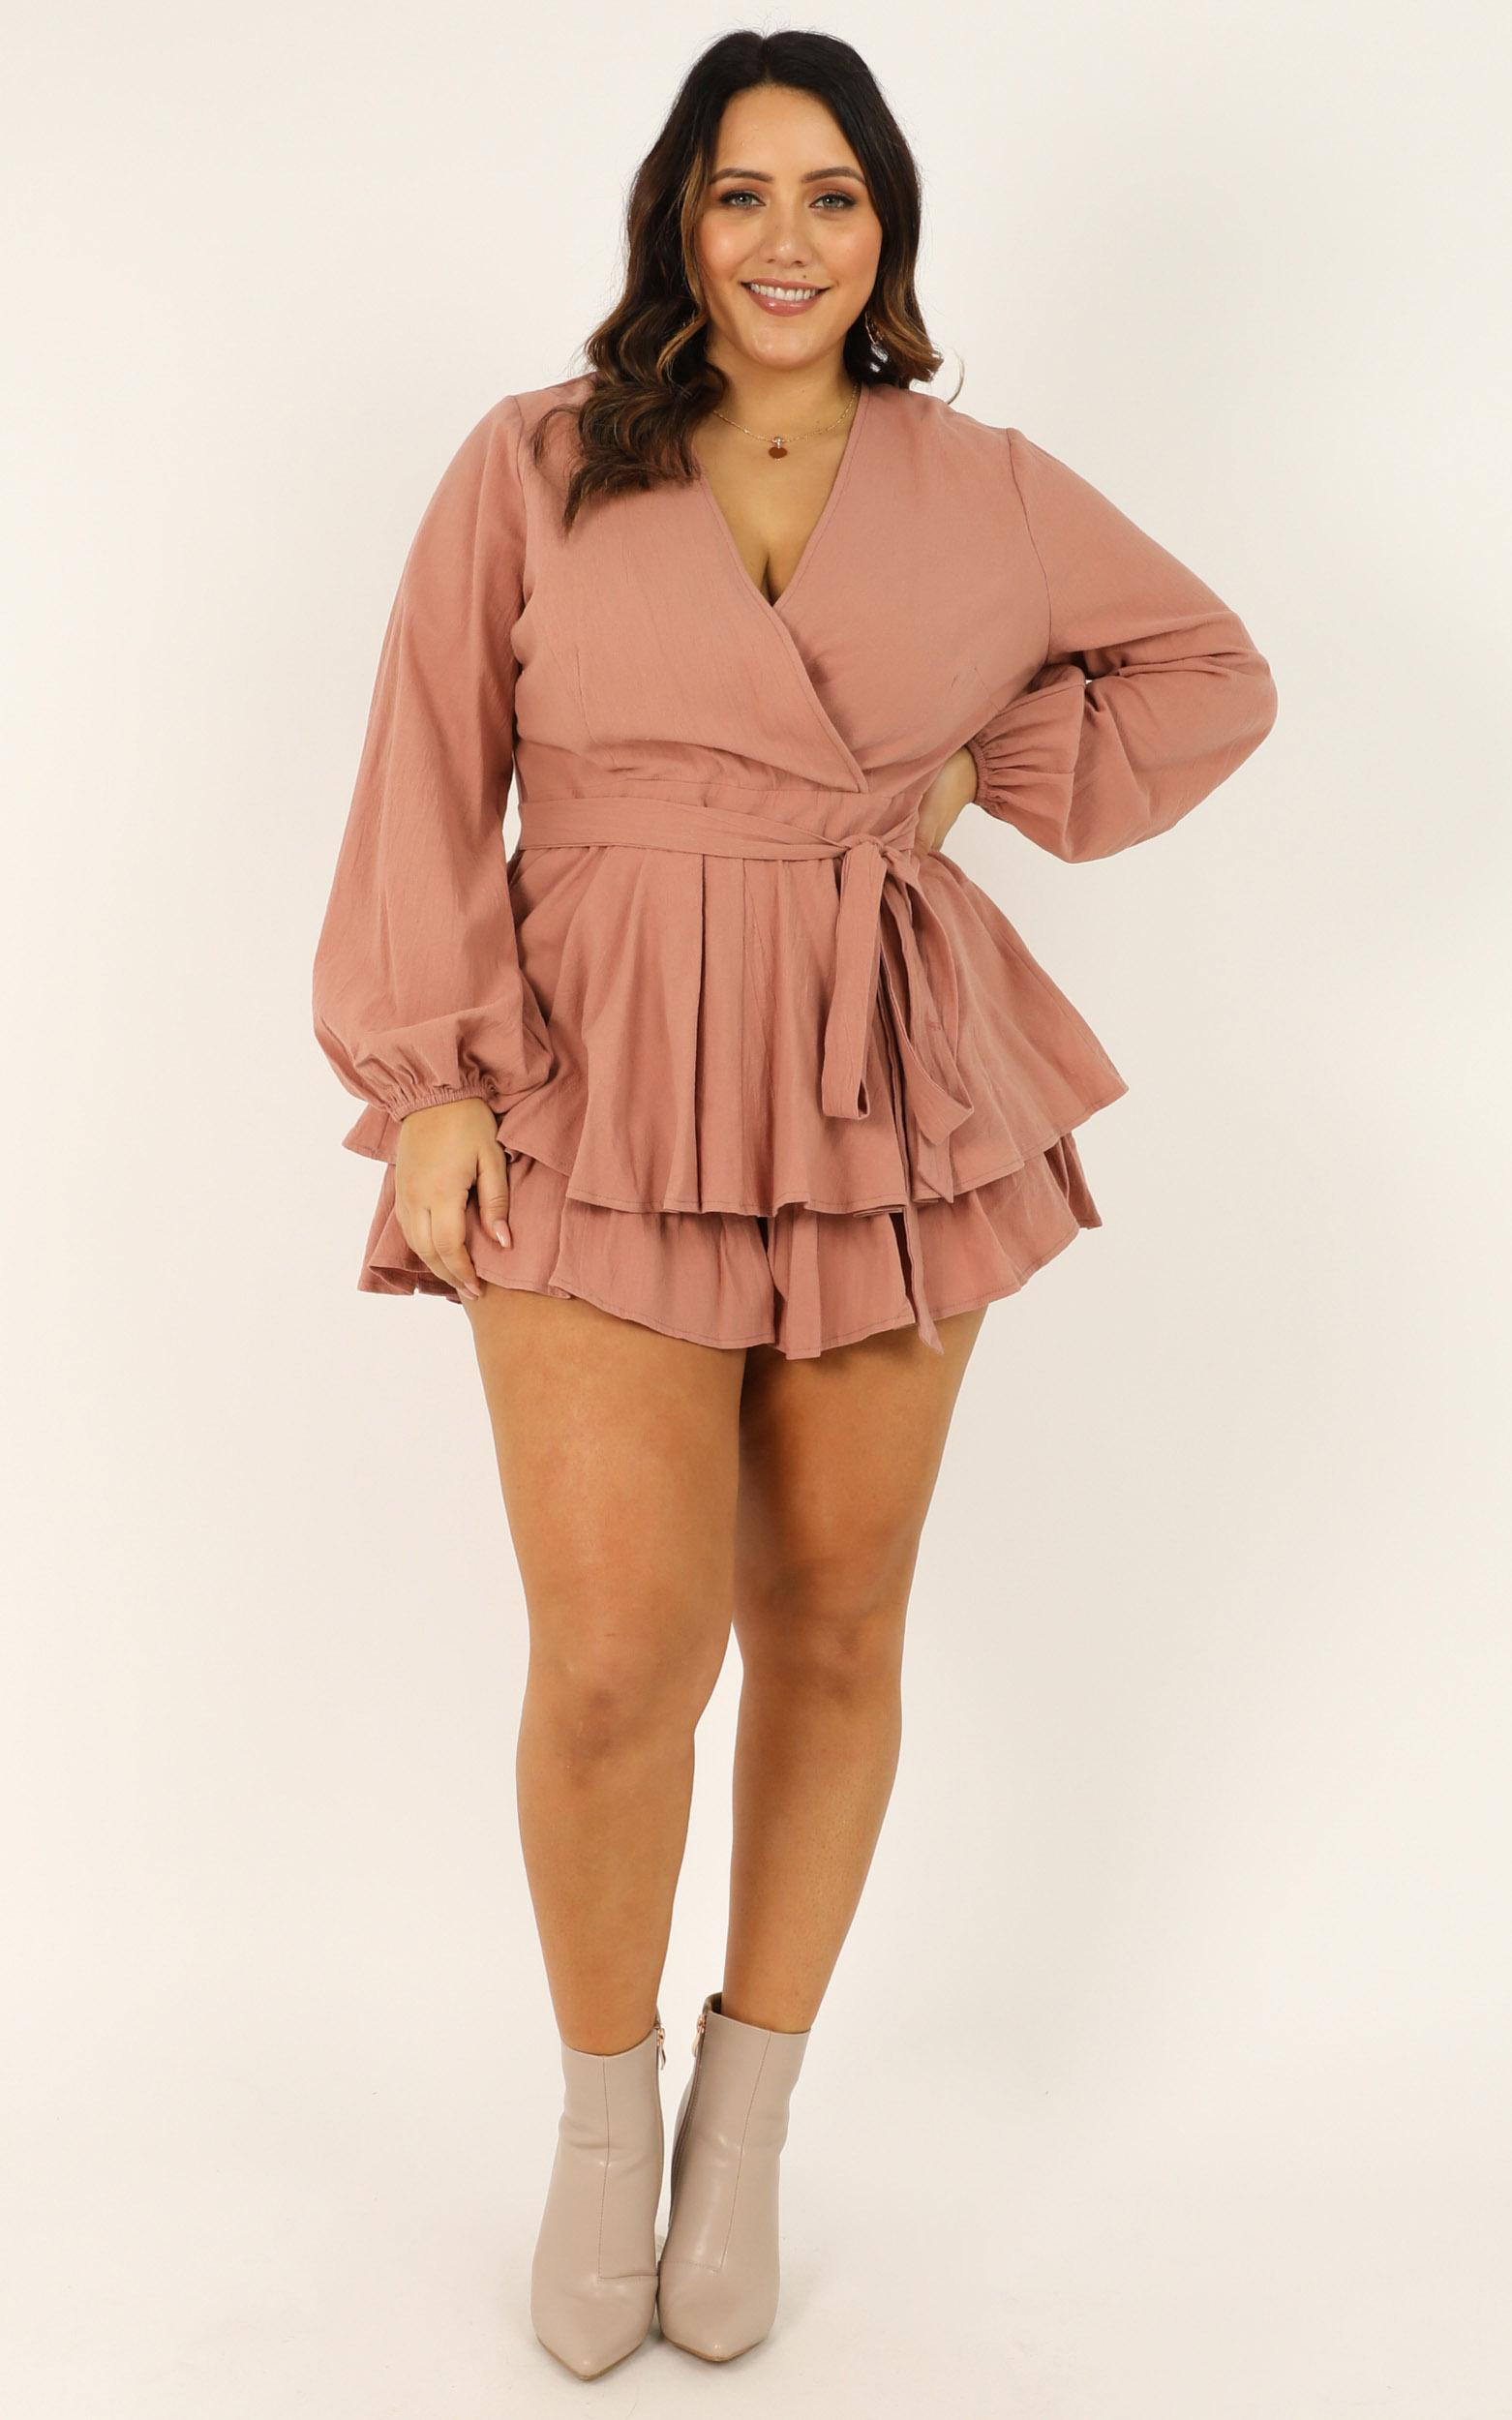 Wandering Around Playsuit in Dusty Rose Linen Look - 20, PNK1, hi-res image number null